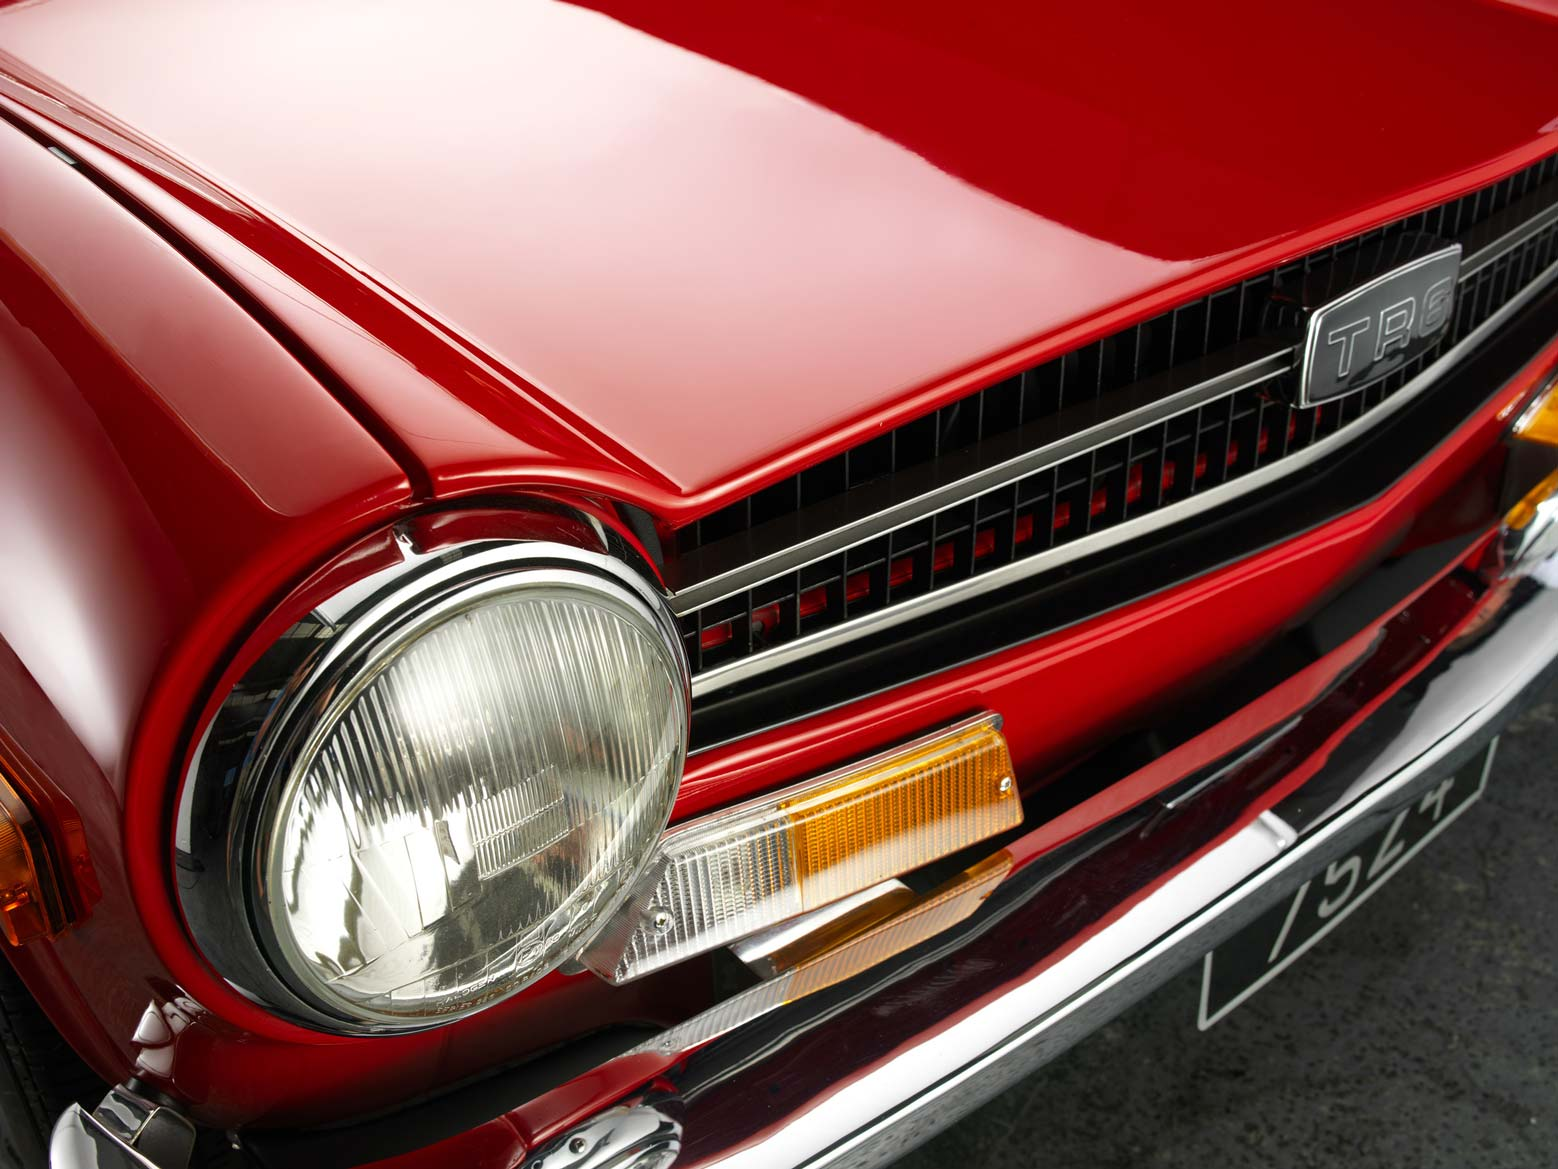 Close up detail of classic car